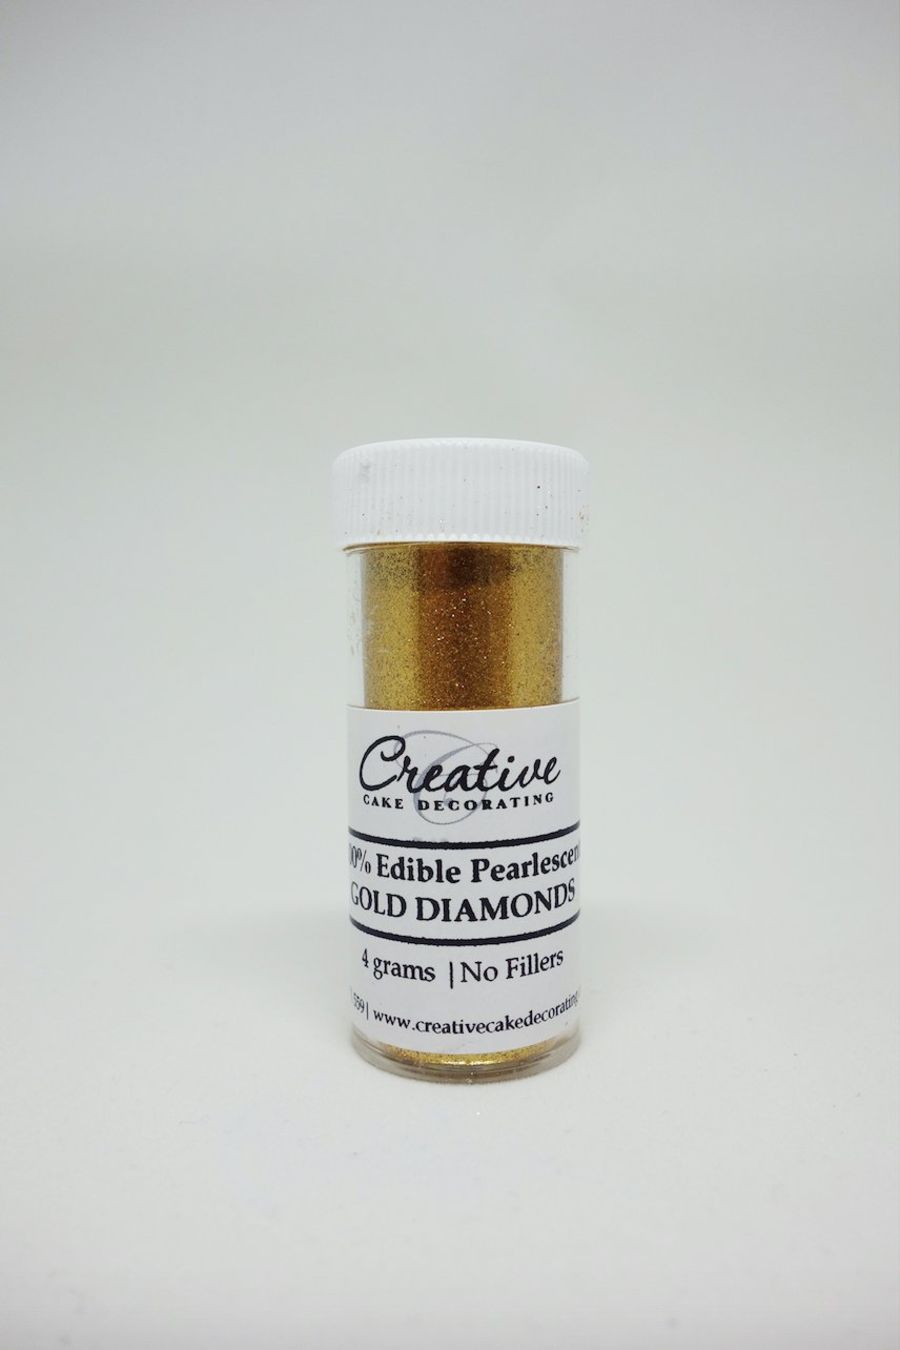 Pearlescent Gold Diamonds